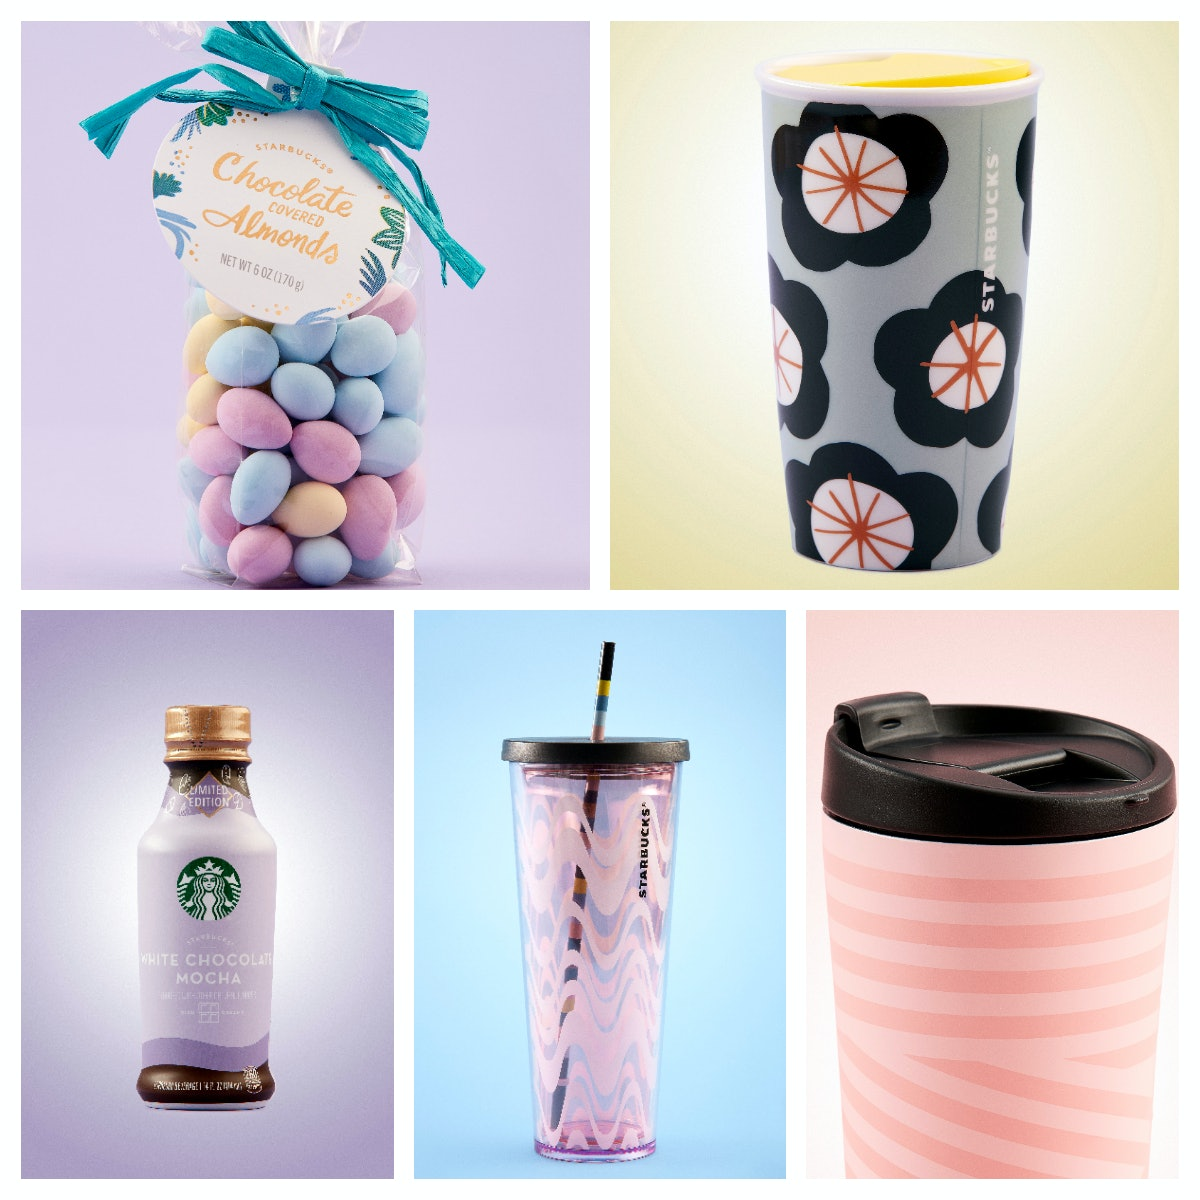 506d14e04bd Here's Where To Buy Starbucks' Spring Merch If You Love Millennial Pink &  Pastels